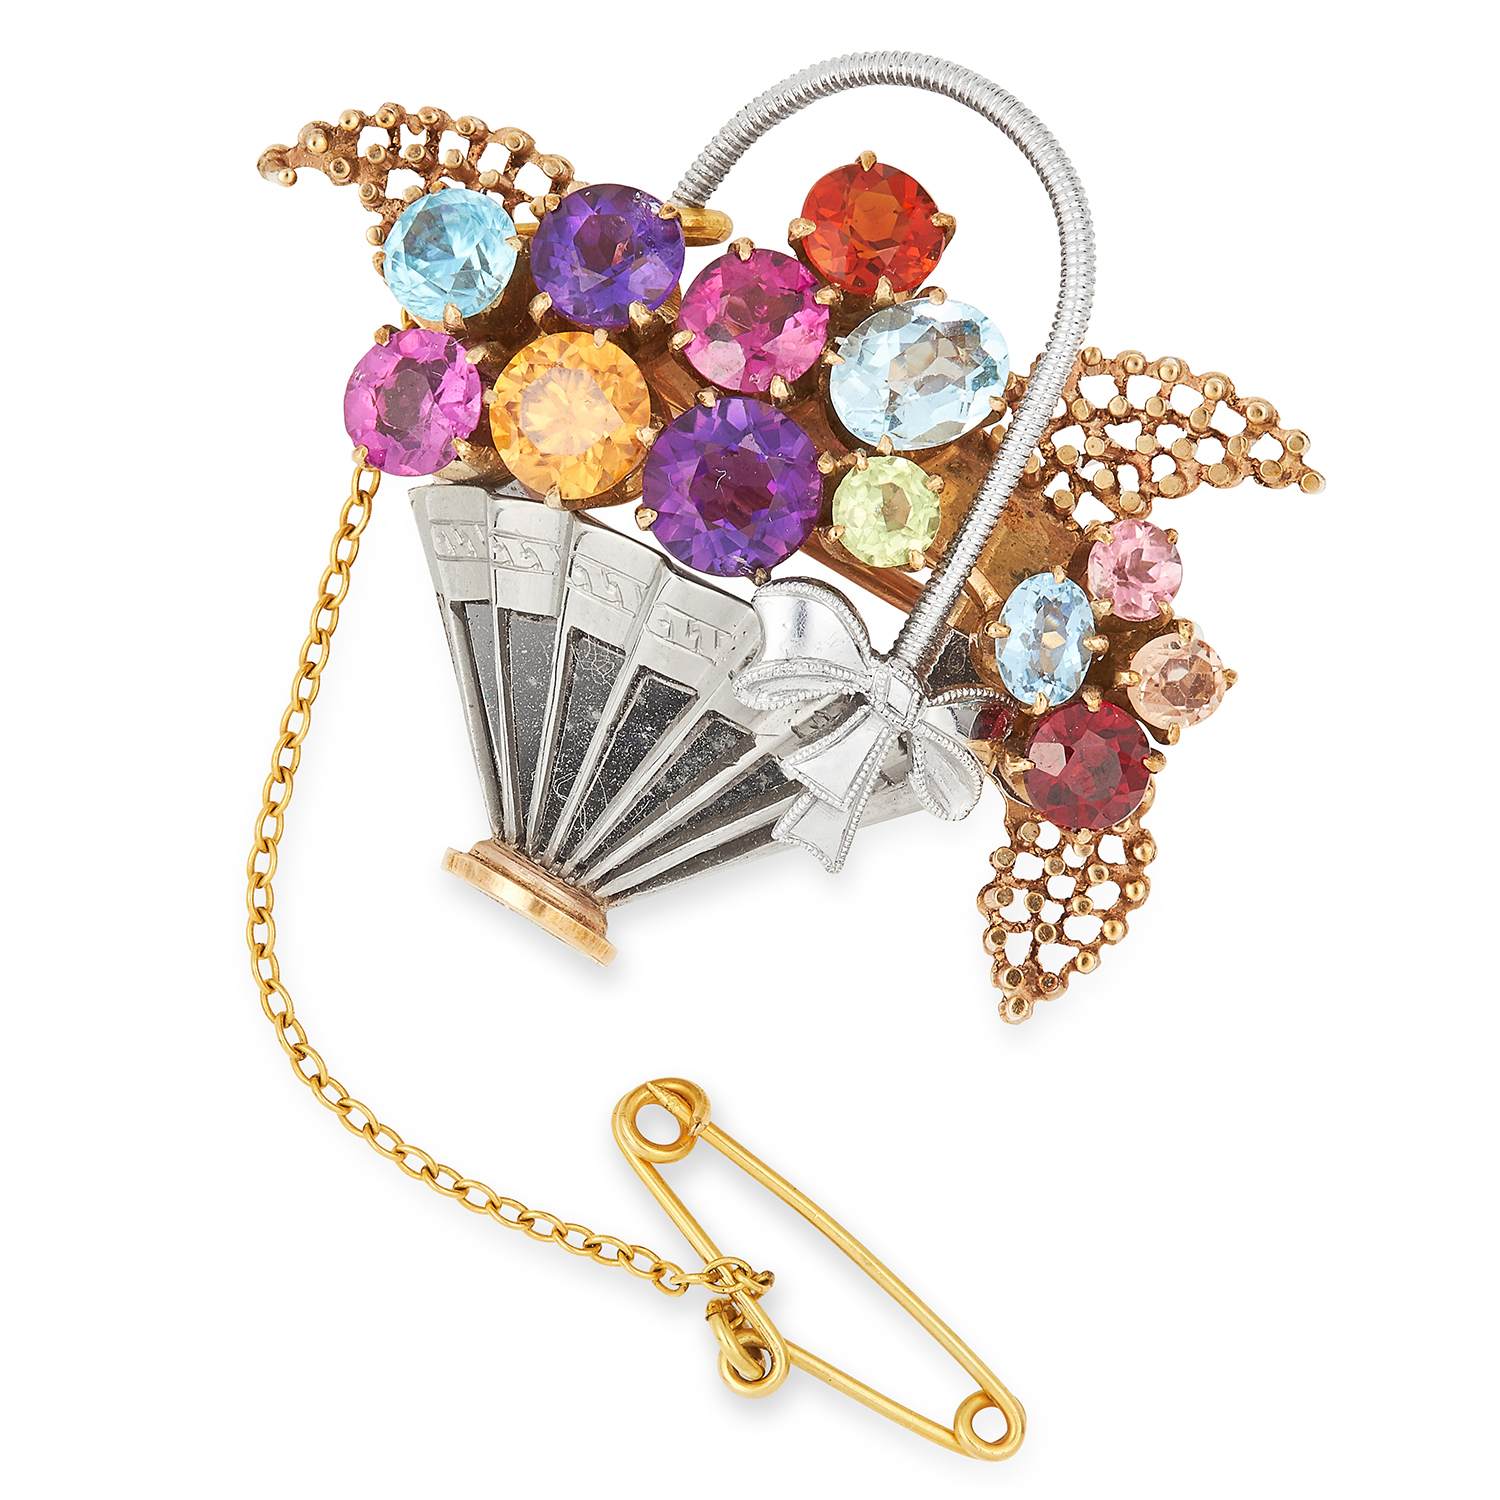 GEMSET GIARDINETTO BASKET BROOCH set with various coloured gemstones, 4cm, 11.9g.